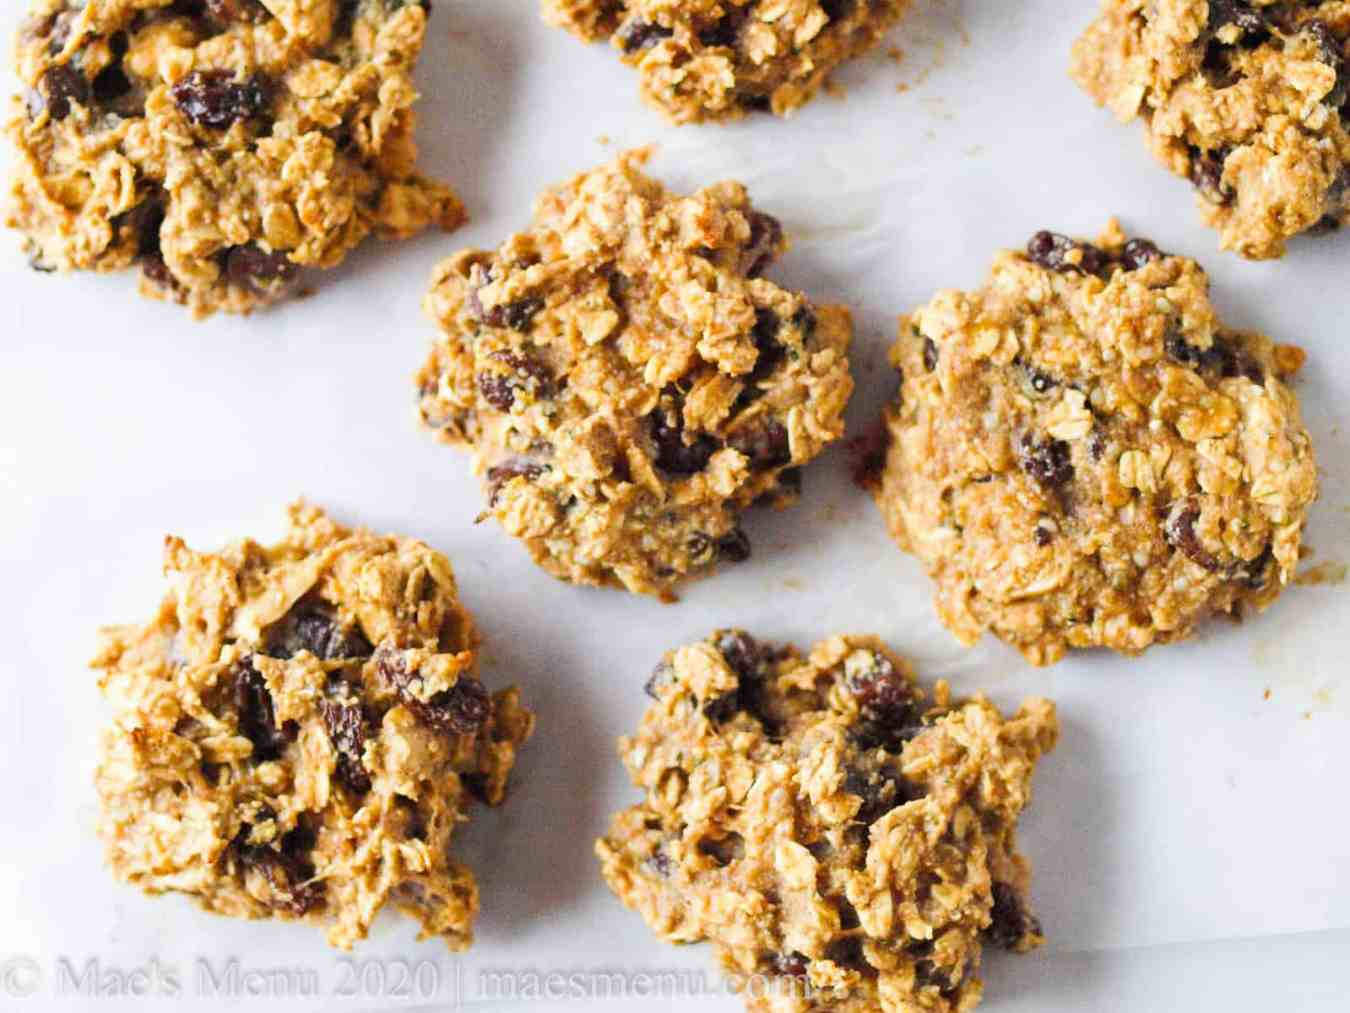 oat protein cookies on a white background.